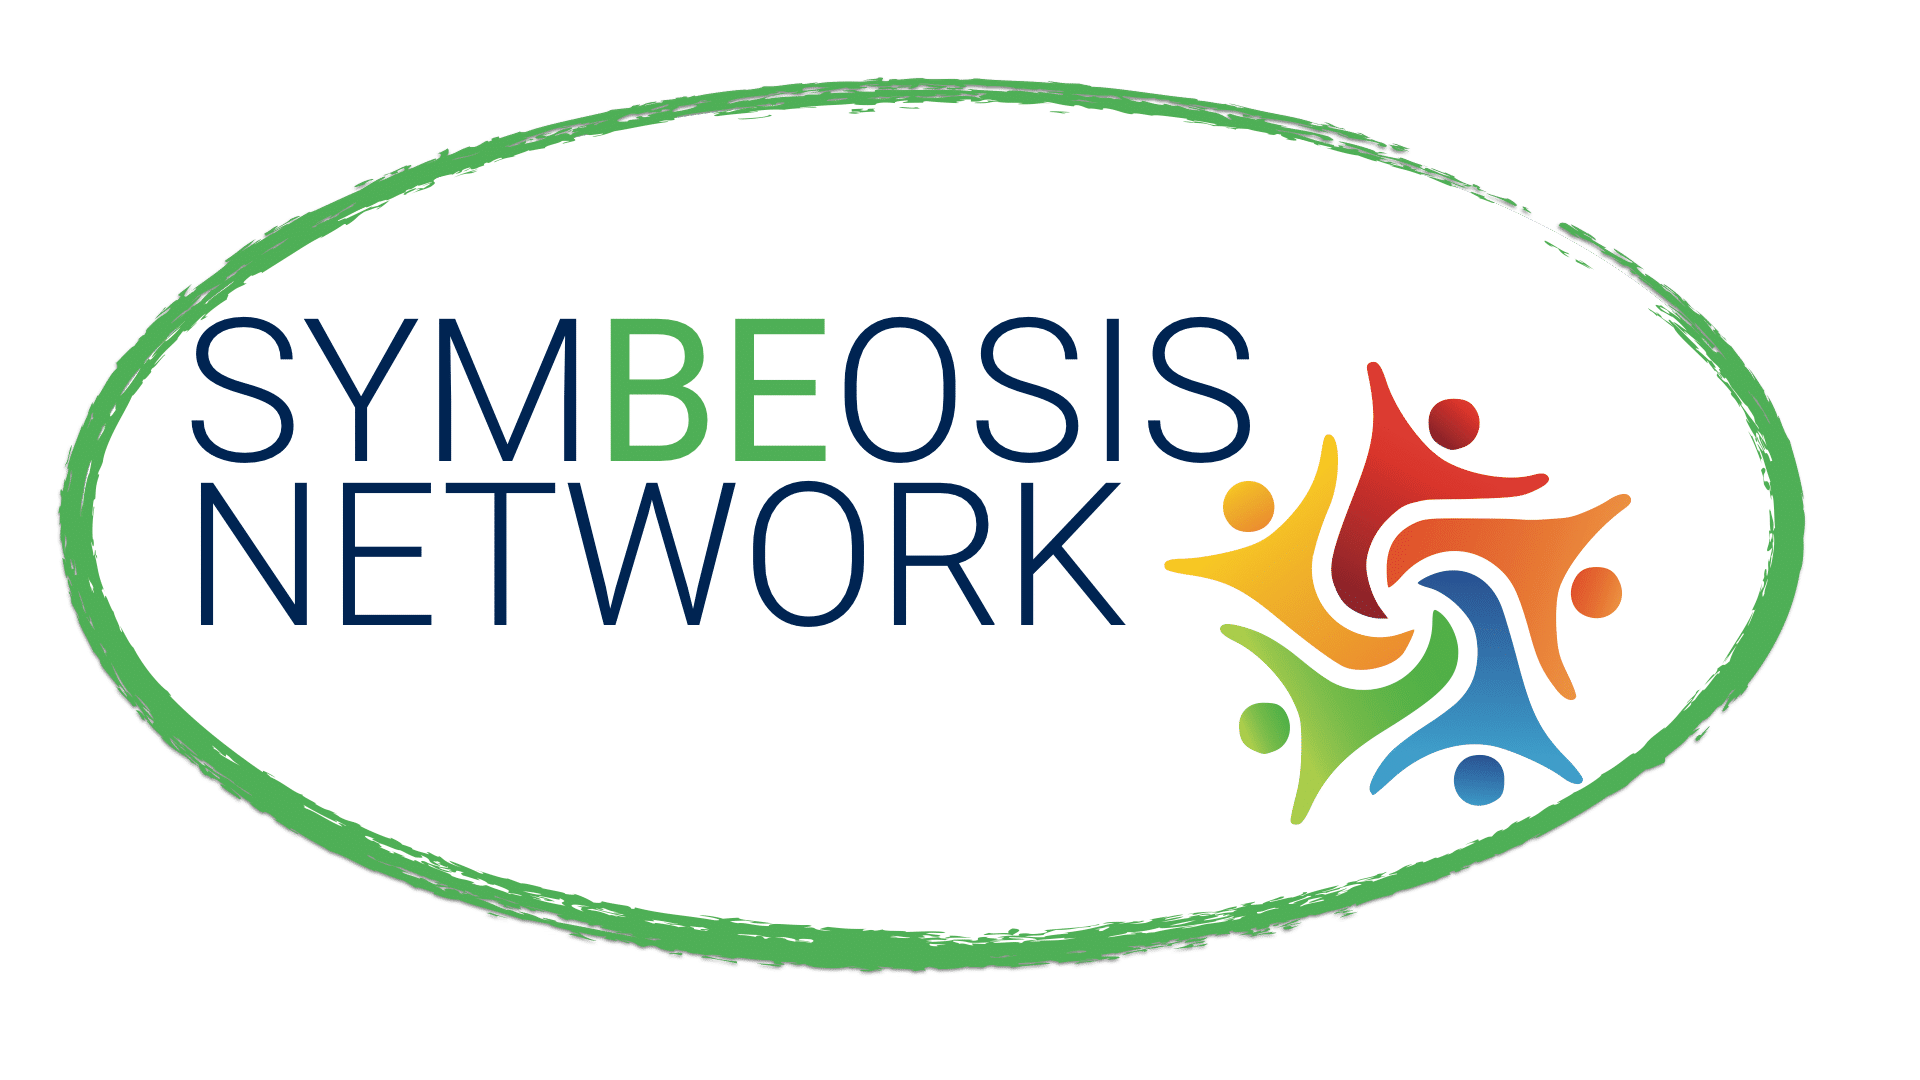 sites/83436891/symbeosis network icon.001.png